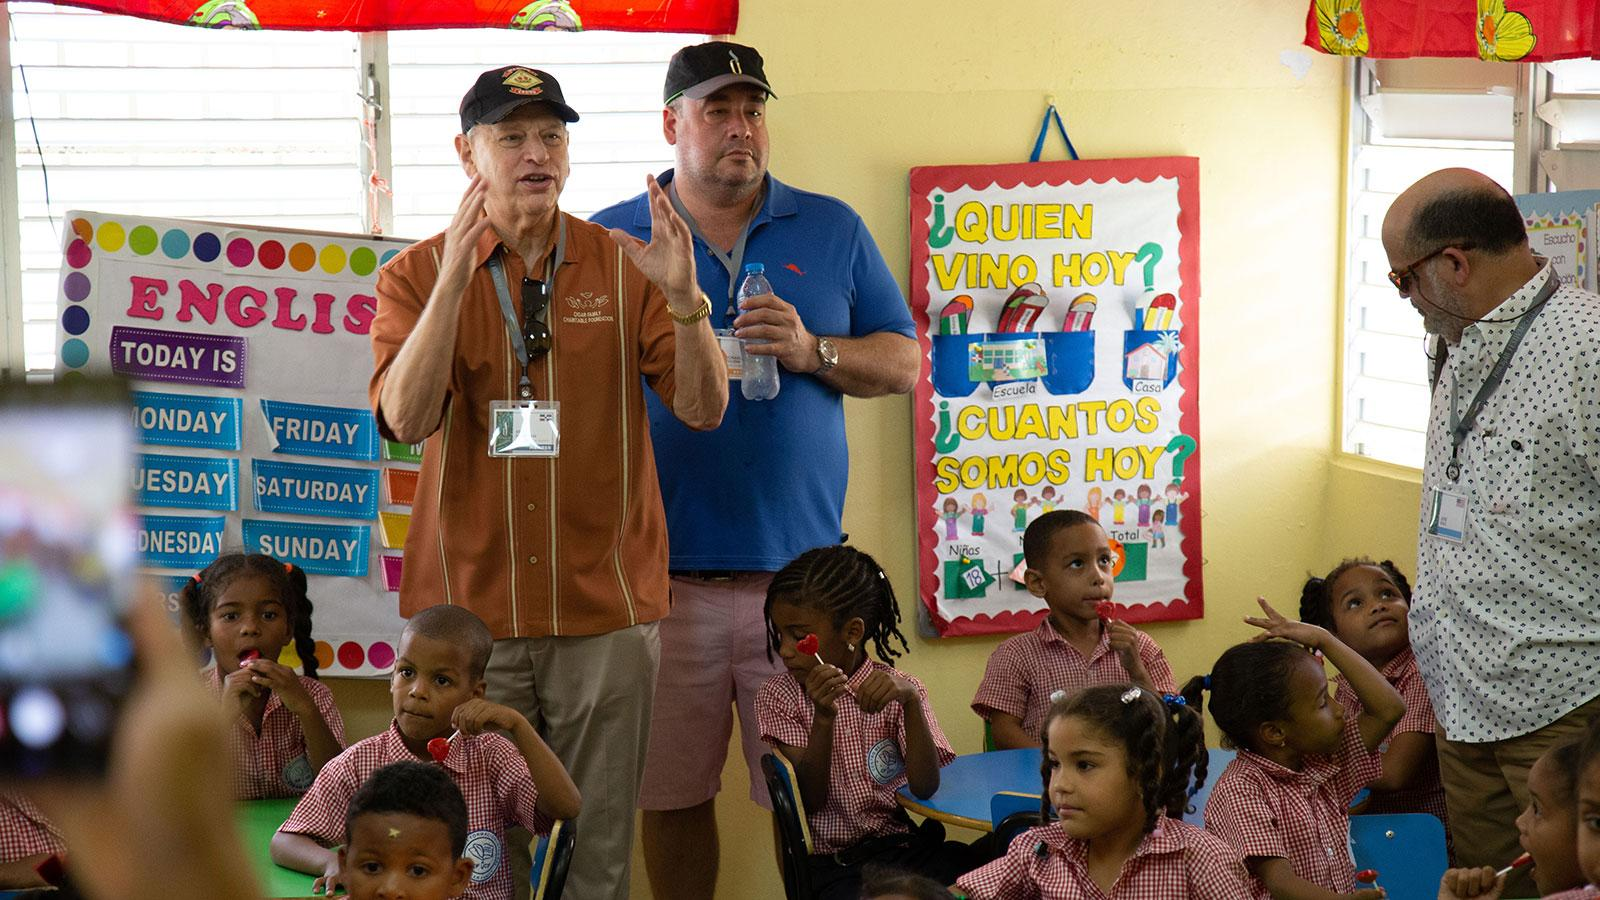 "Eric Newman of J.C. Newman Cigars leading a tour of the Cigar Family School. Started in 2001, the Cigar Family Charitable Foundation has raised millions of dollars for the impoverished children of the Dominican Republic, including building a school. ""The only way to break the cycle of poverty is through education,"" says Newman."